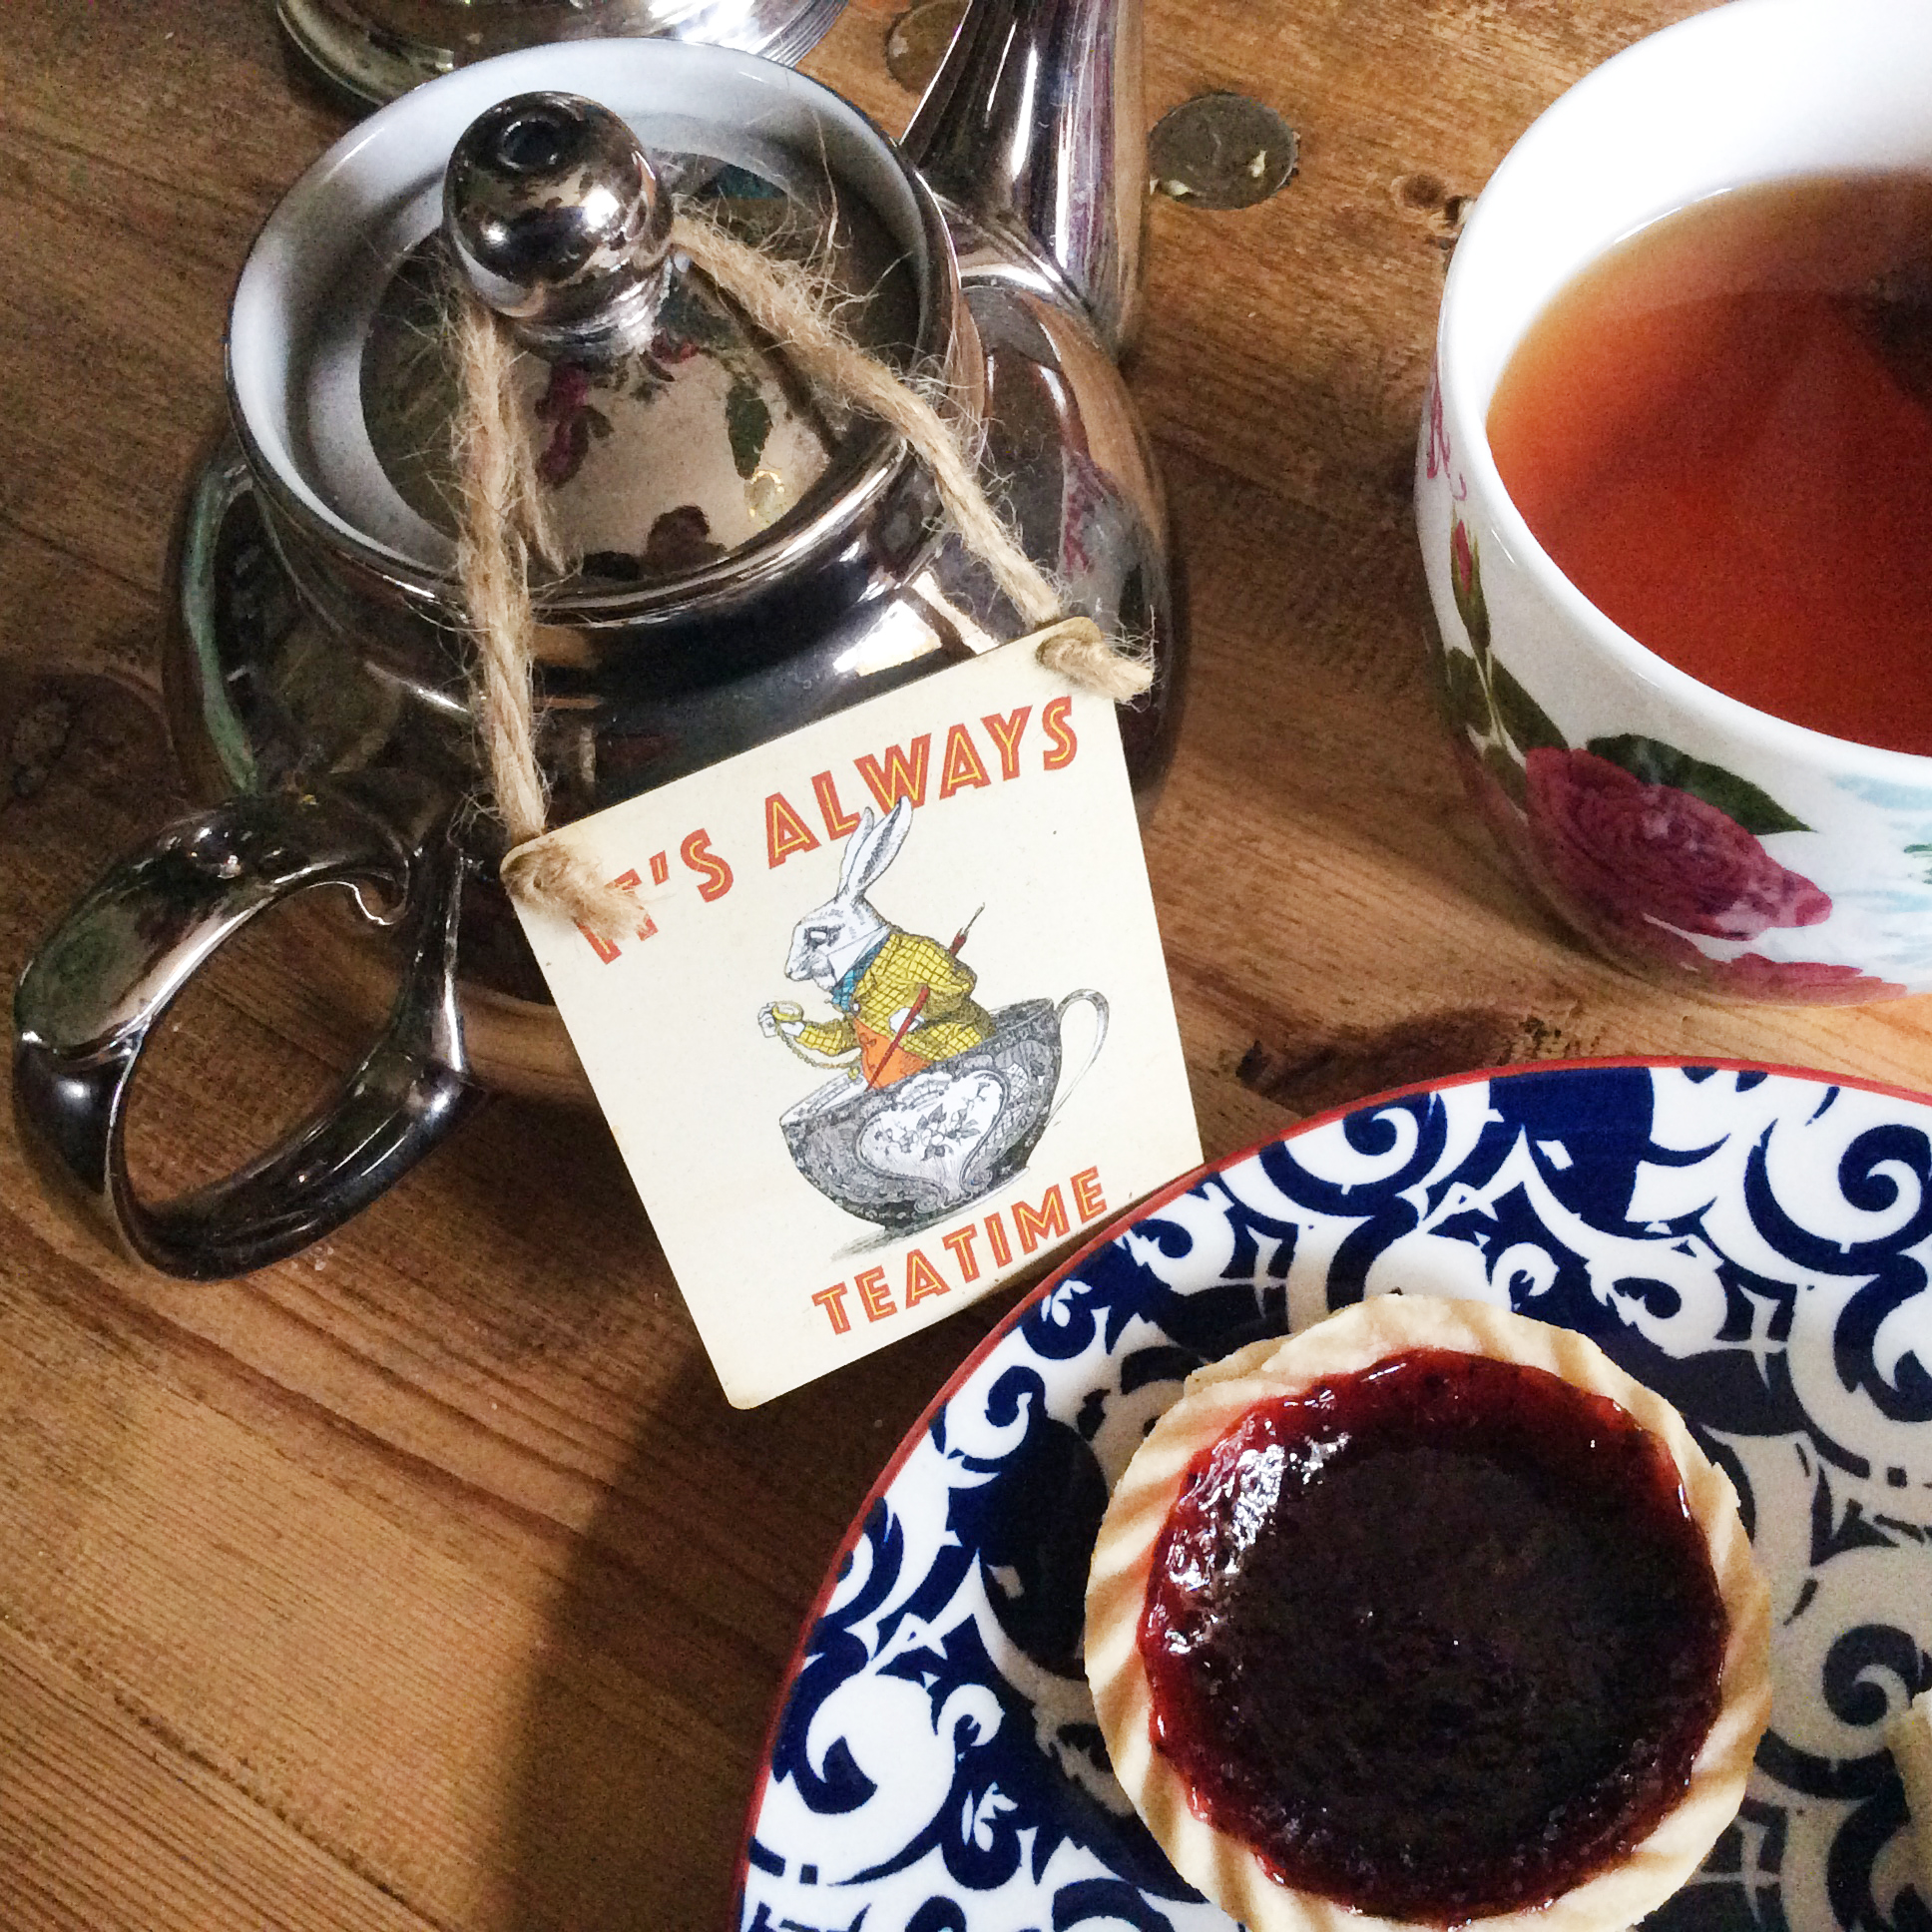 "A silver teapot has a tag around it that says ""it's always teatime"" with a picture of the White Rabbit from Alice in Wonderland. Next to it sits a blue and white floral plate with a jam tart and a cup full of tea."